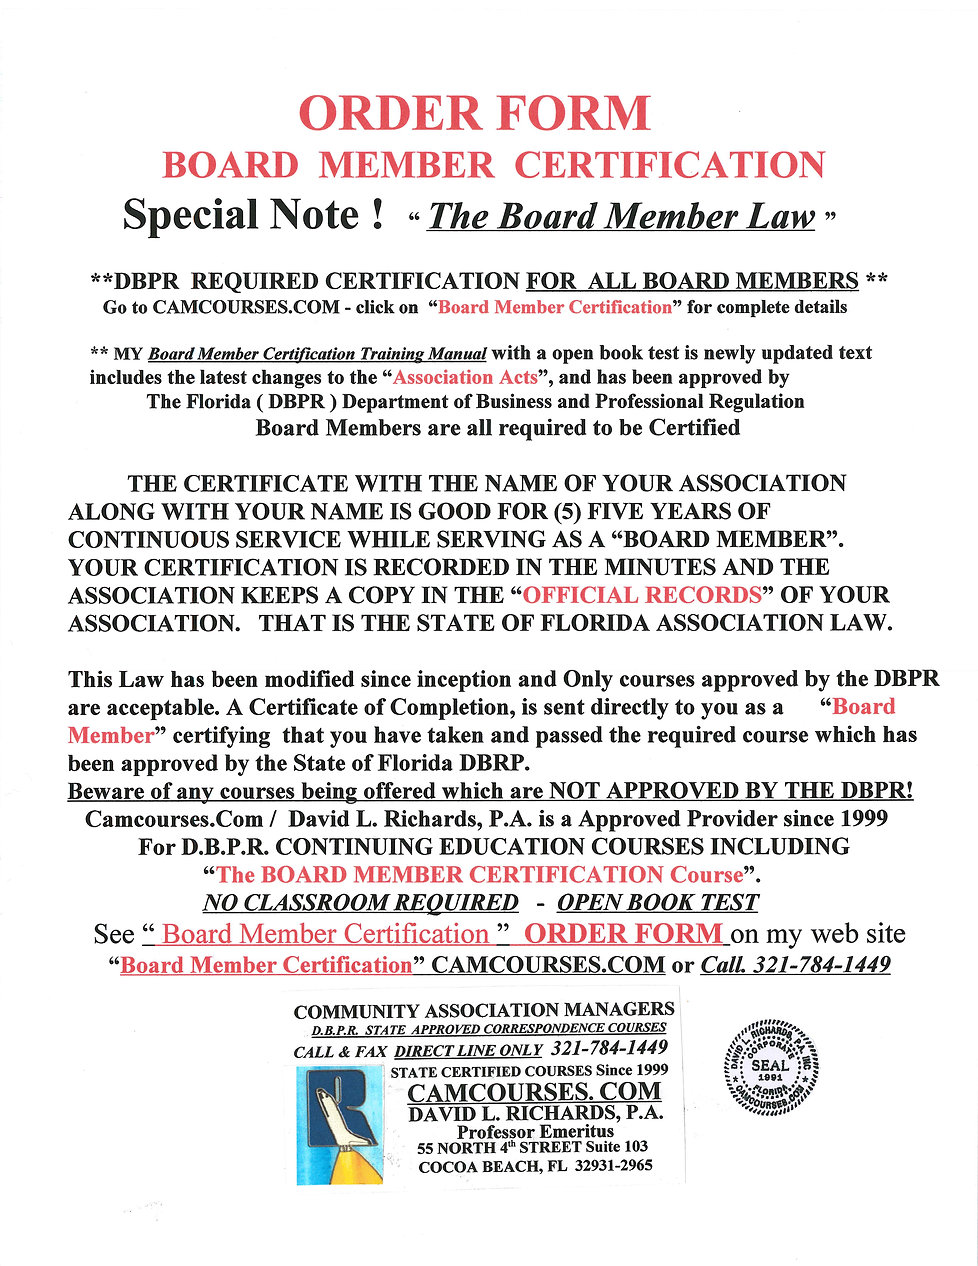 Board Member Certification Notes.jpg